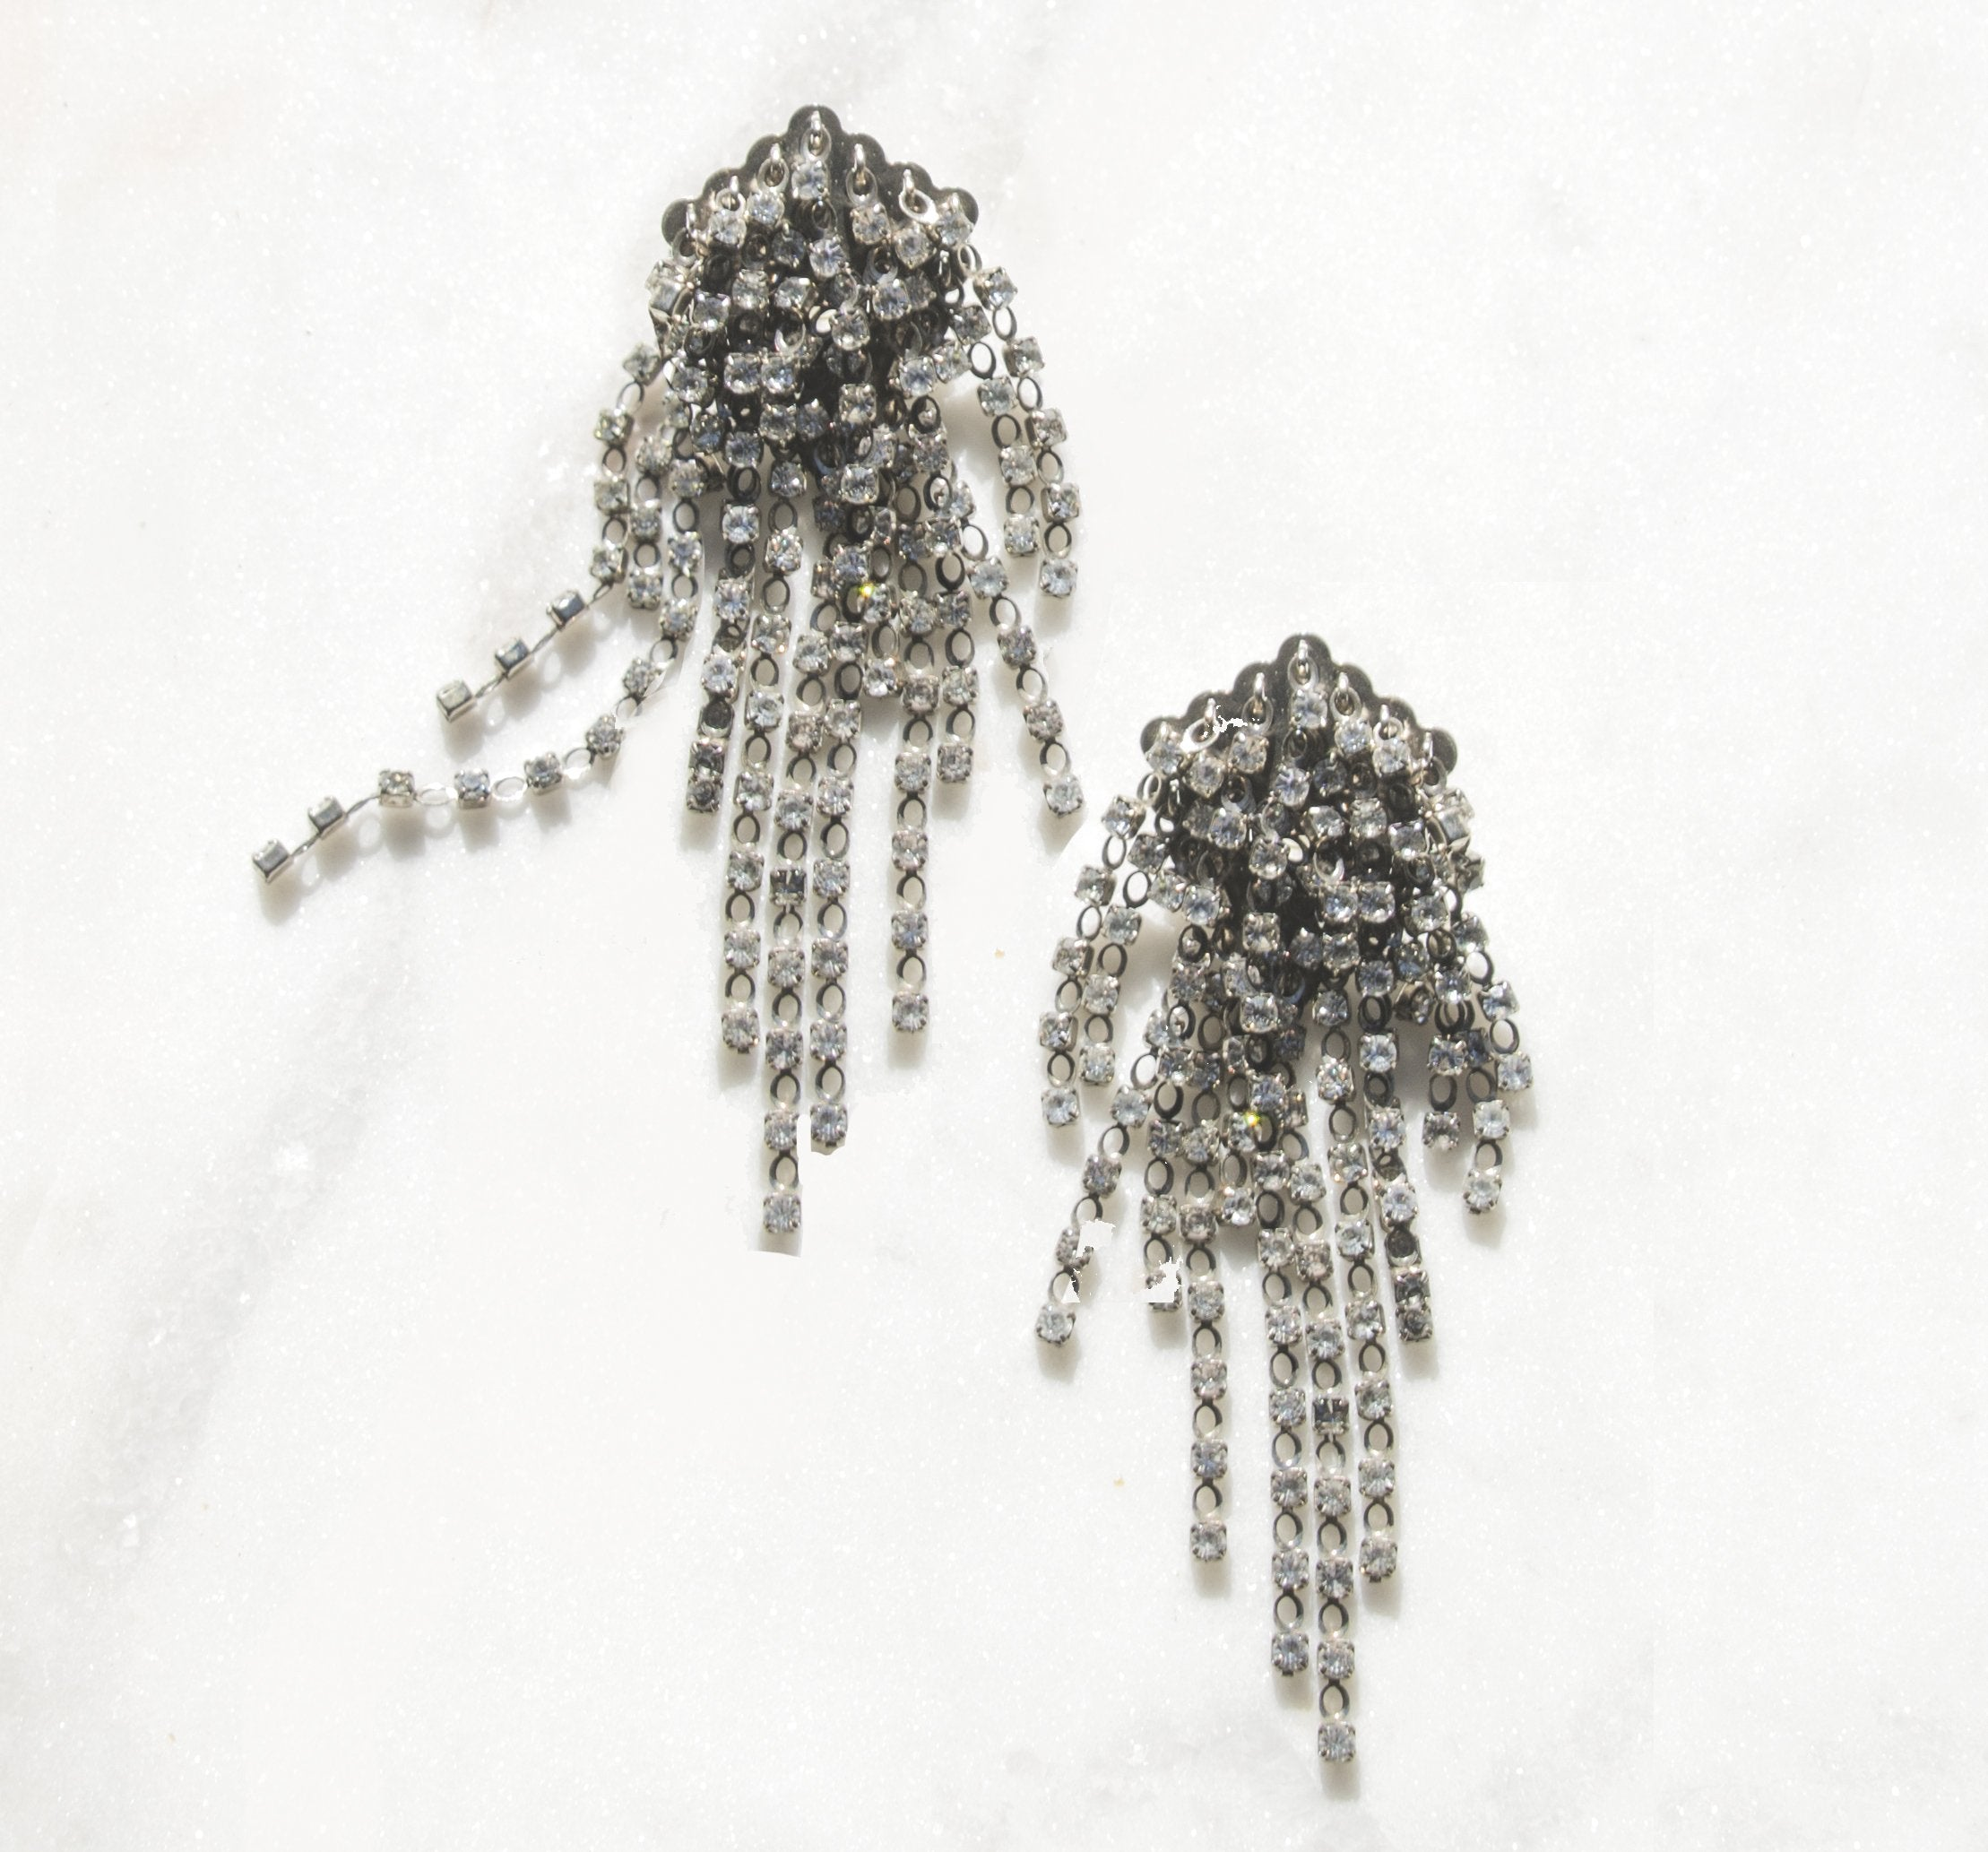 IV Rhinestone Earrings | Recollect Jewelry